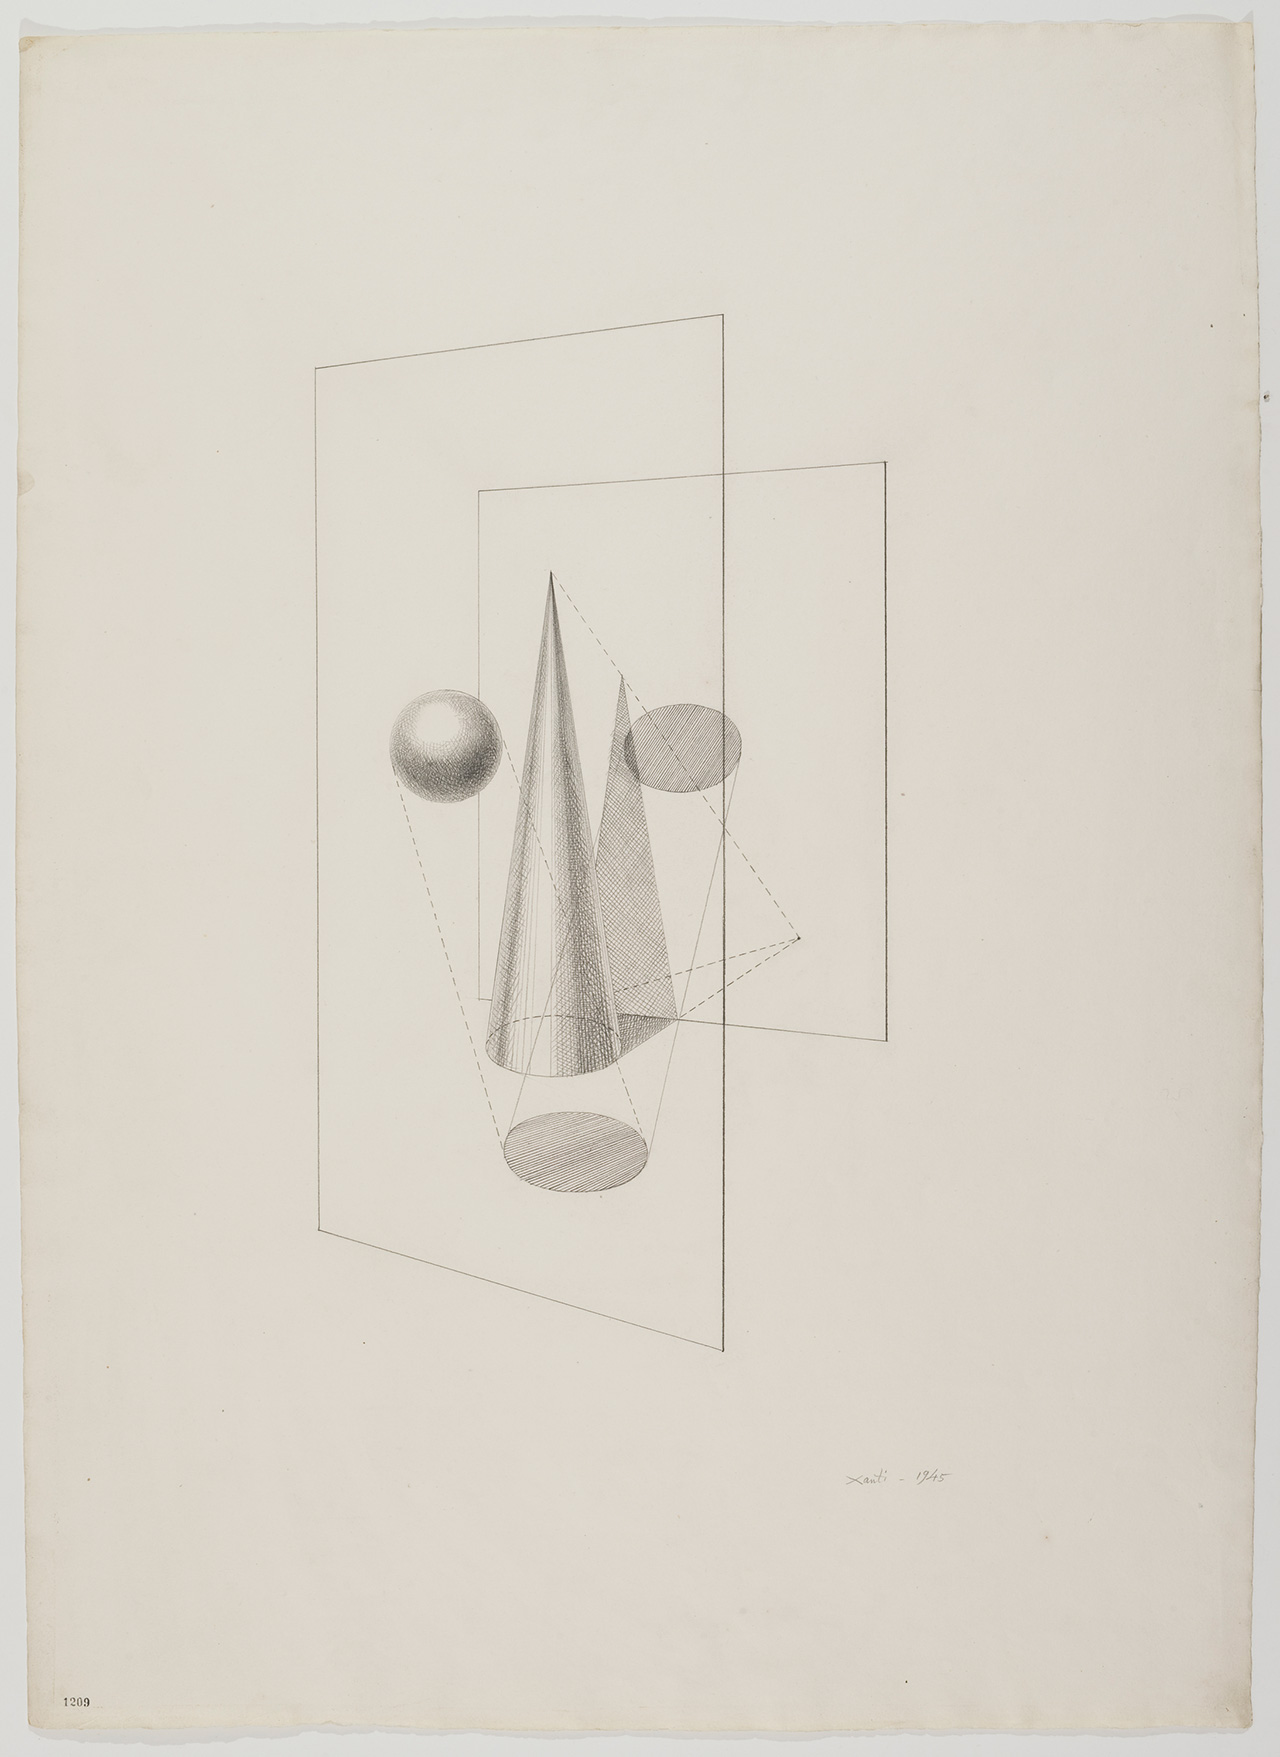 """Xanti Schawinsky, """"Euclidian"""" (1943), Head Drawings, graphite on paper, 31 1/2 x 23 inches (80 X 58.4 cm)"""